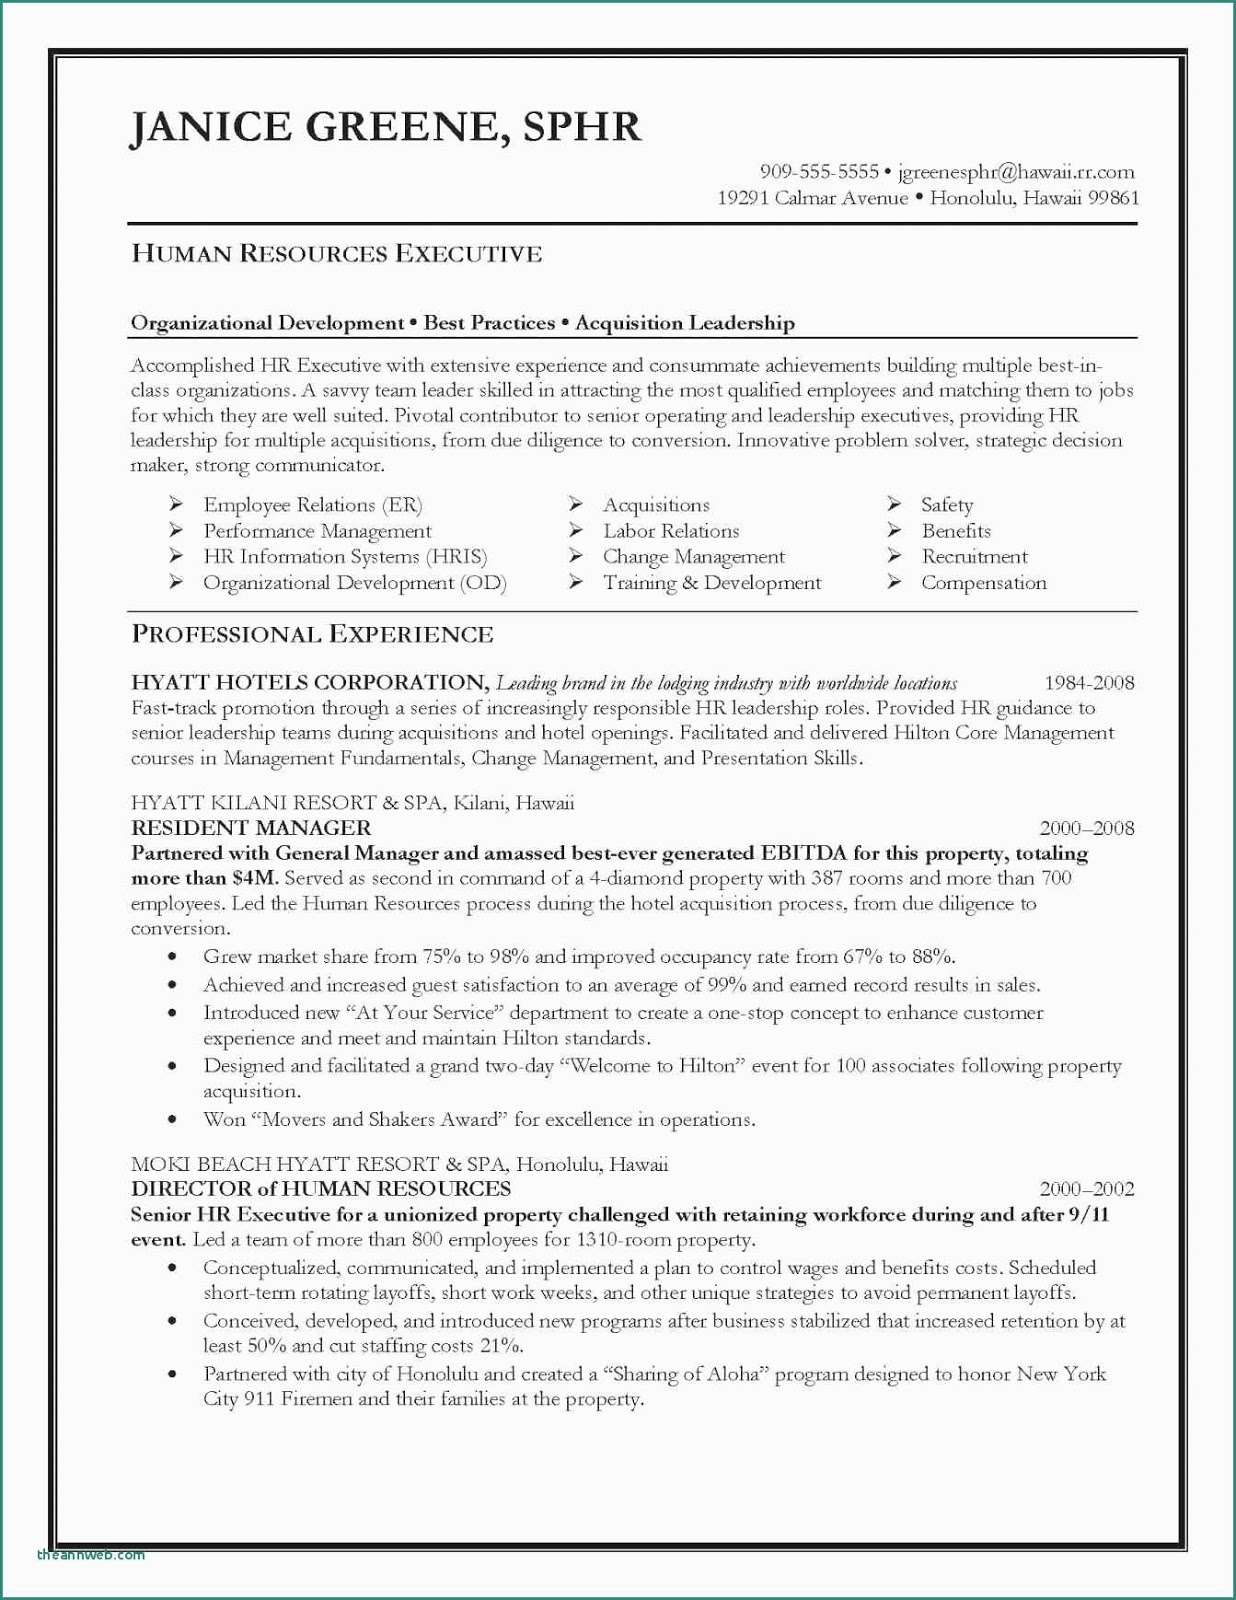 information technology resume examples, information technology resume examples 2019, information technology resume examples 2020, information technology resume examples 2018, information technology resume examples no experience, information technology resume examples 2017, information technology resume examples pdf, information technology resume examples australia, information technology internship resume examples, information technology curriculum vitae examples, information technology resume samples,